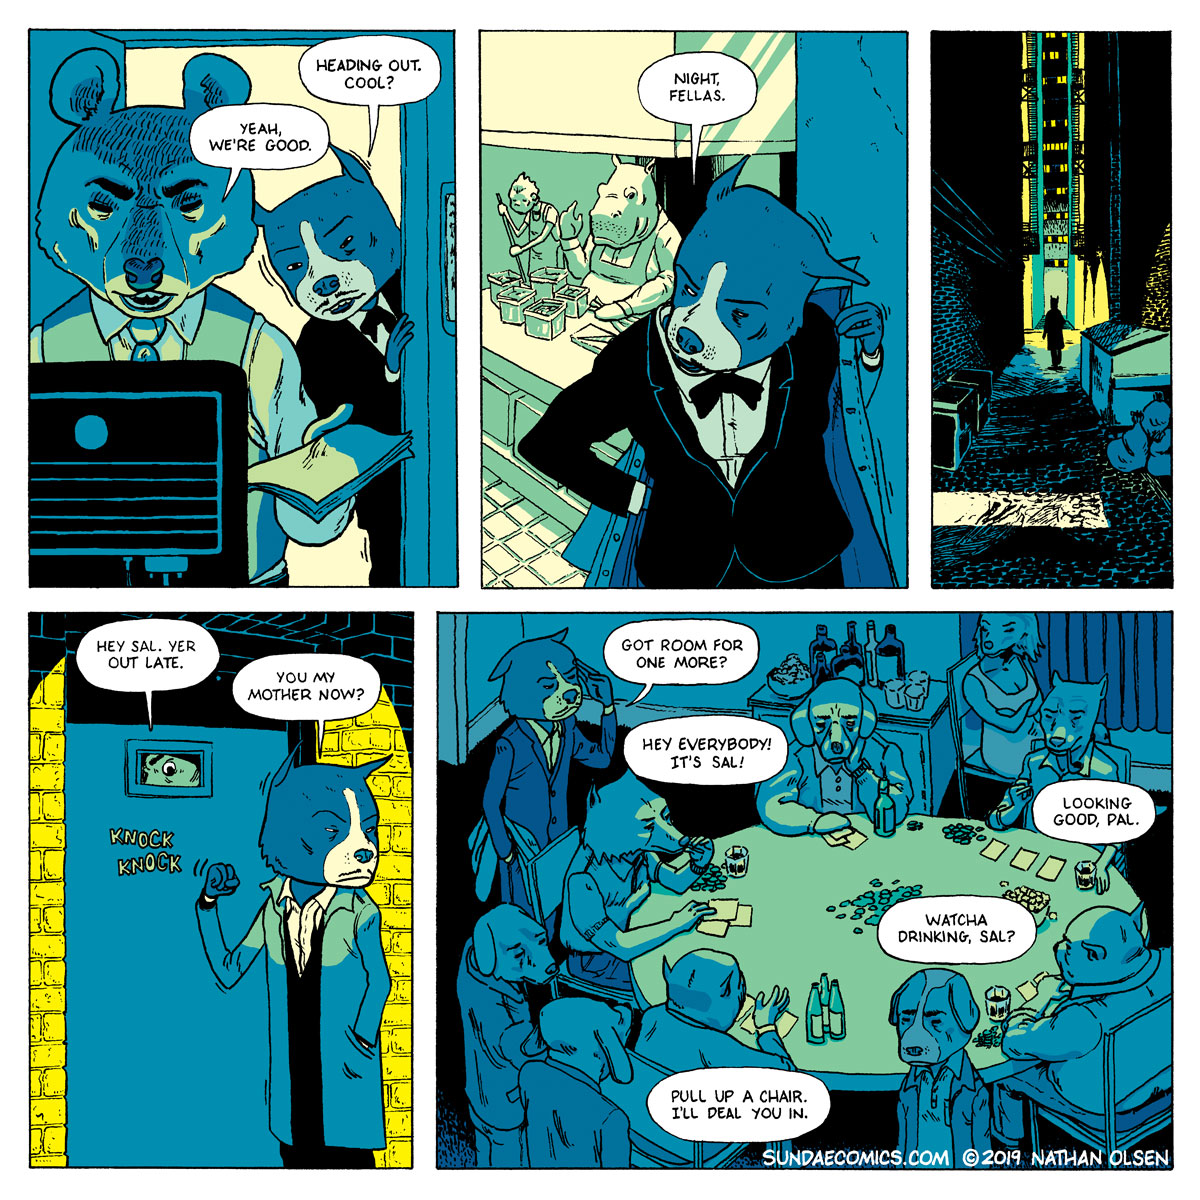 A webcomic about a guy who gets off work and goes out gambling.